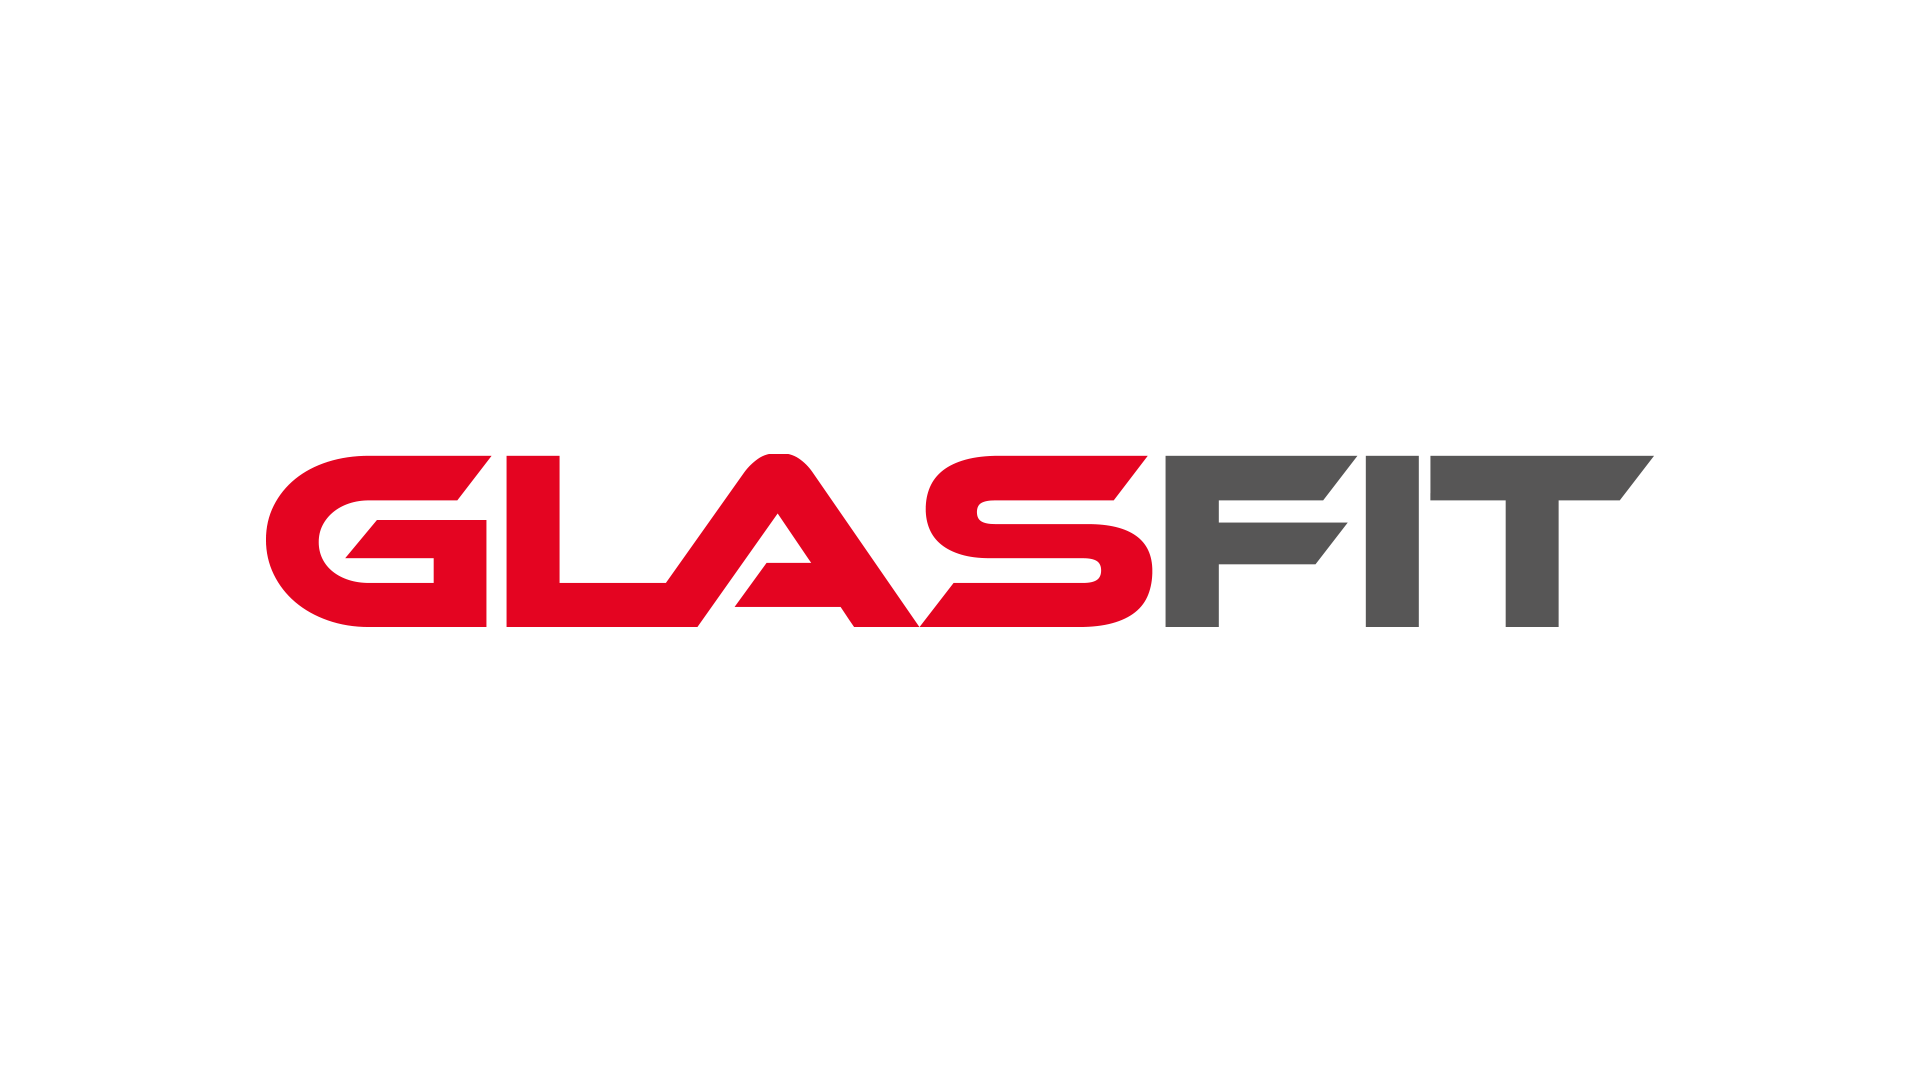 Glasfit Cresta/Blackheath